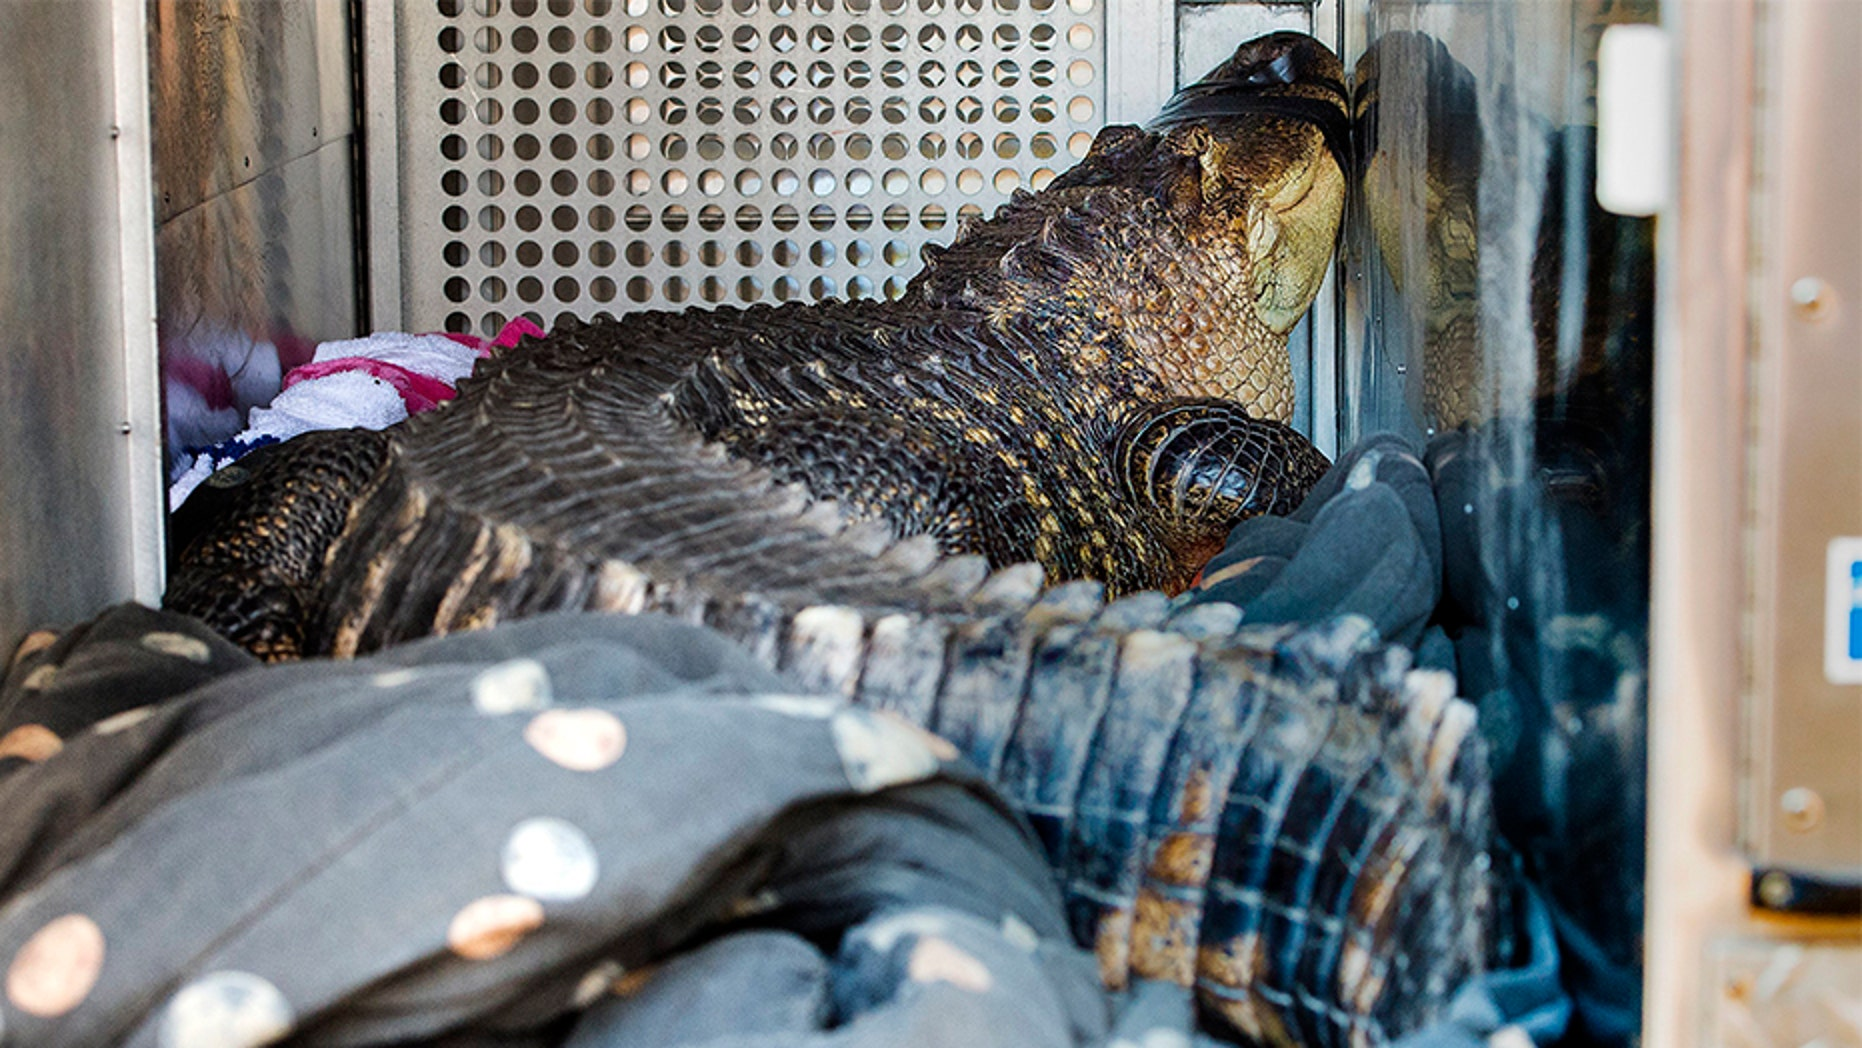 A 7-foot-long, 200-pound alligator named Catfish was found in a hot tub by a landlord evicting a tenant in Kansas City on Wednesday.